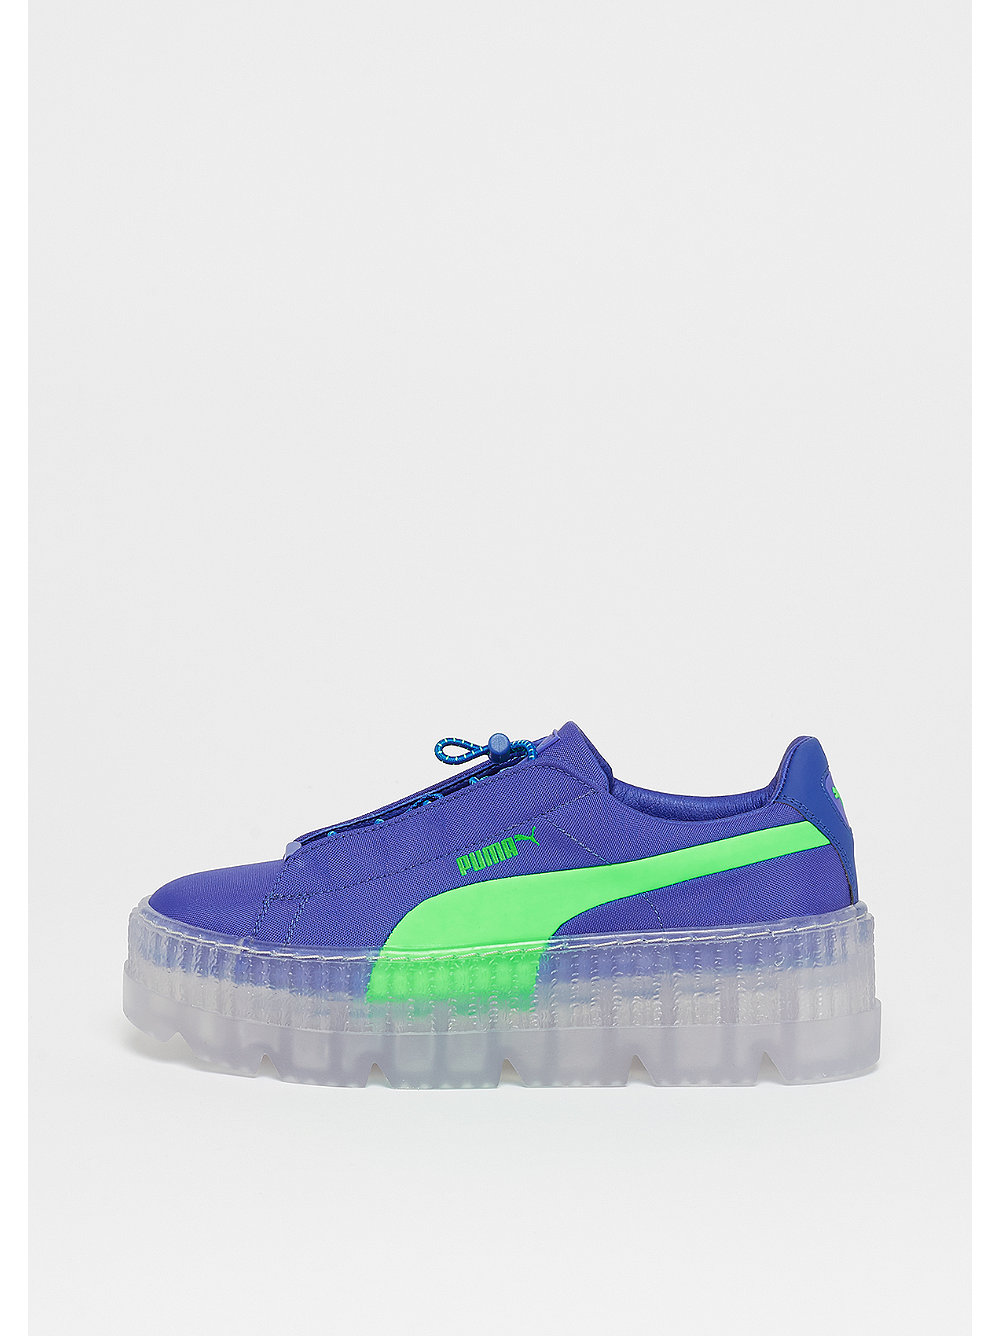 PUMA by RIHANNA Cleated Creeper Surf dazzling blue